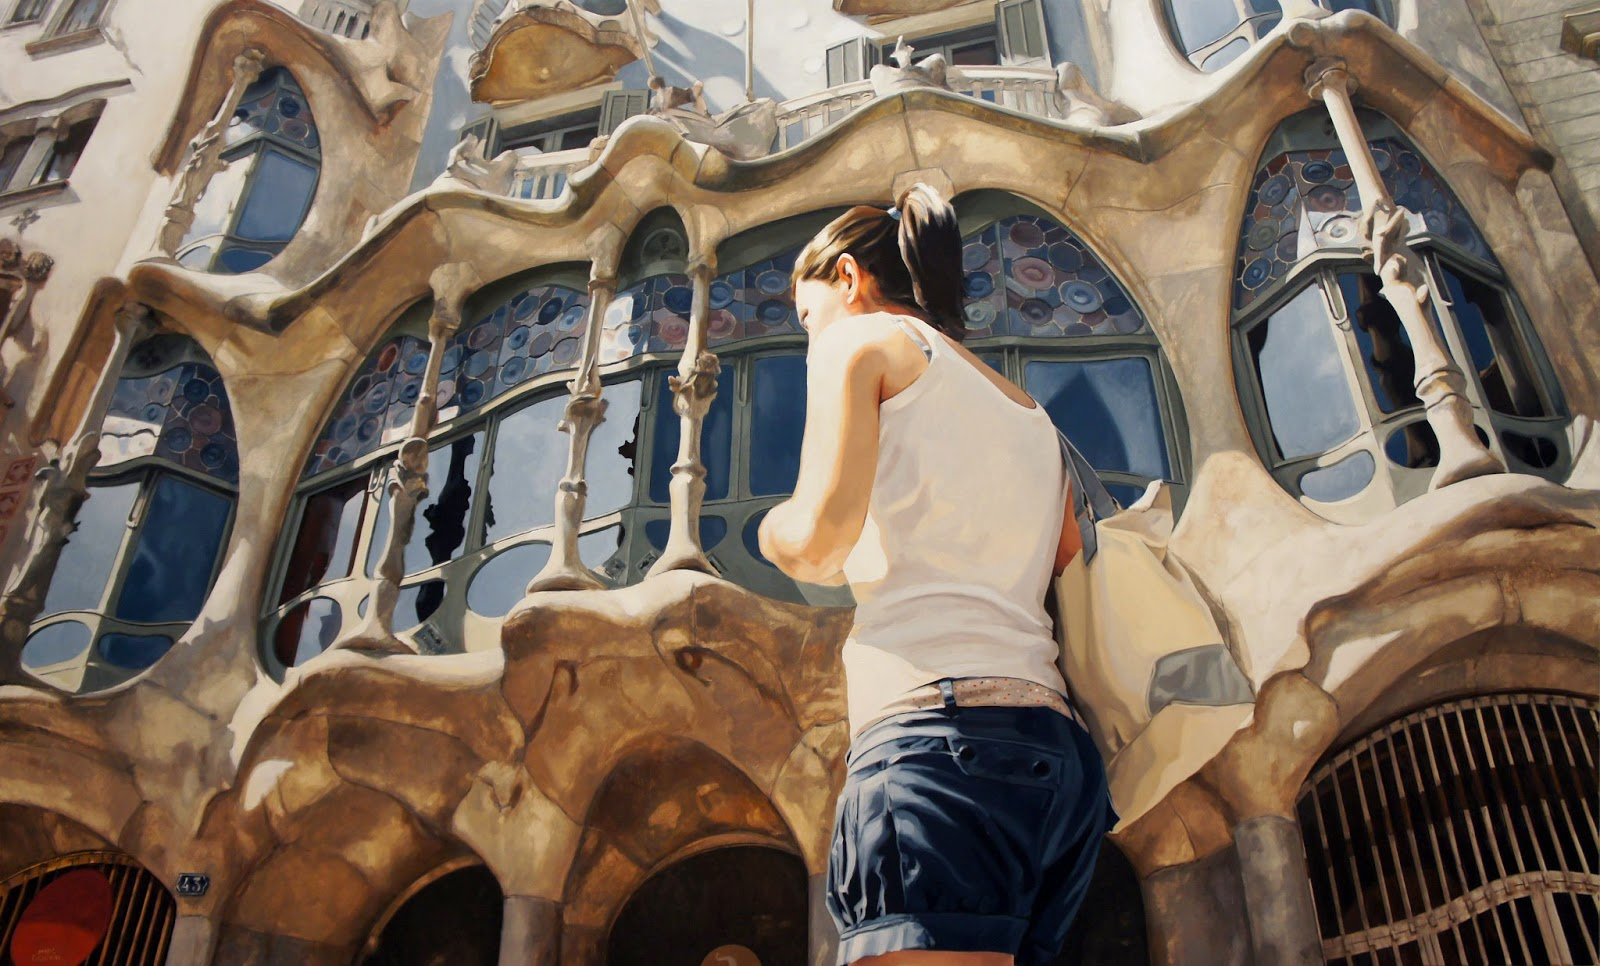 Hyper Realistic Girls Figure Painting By Marc Figueras (28)